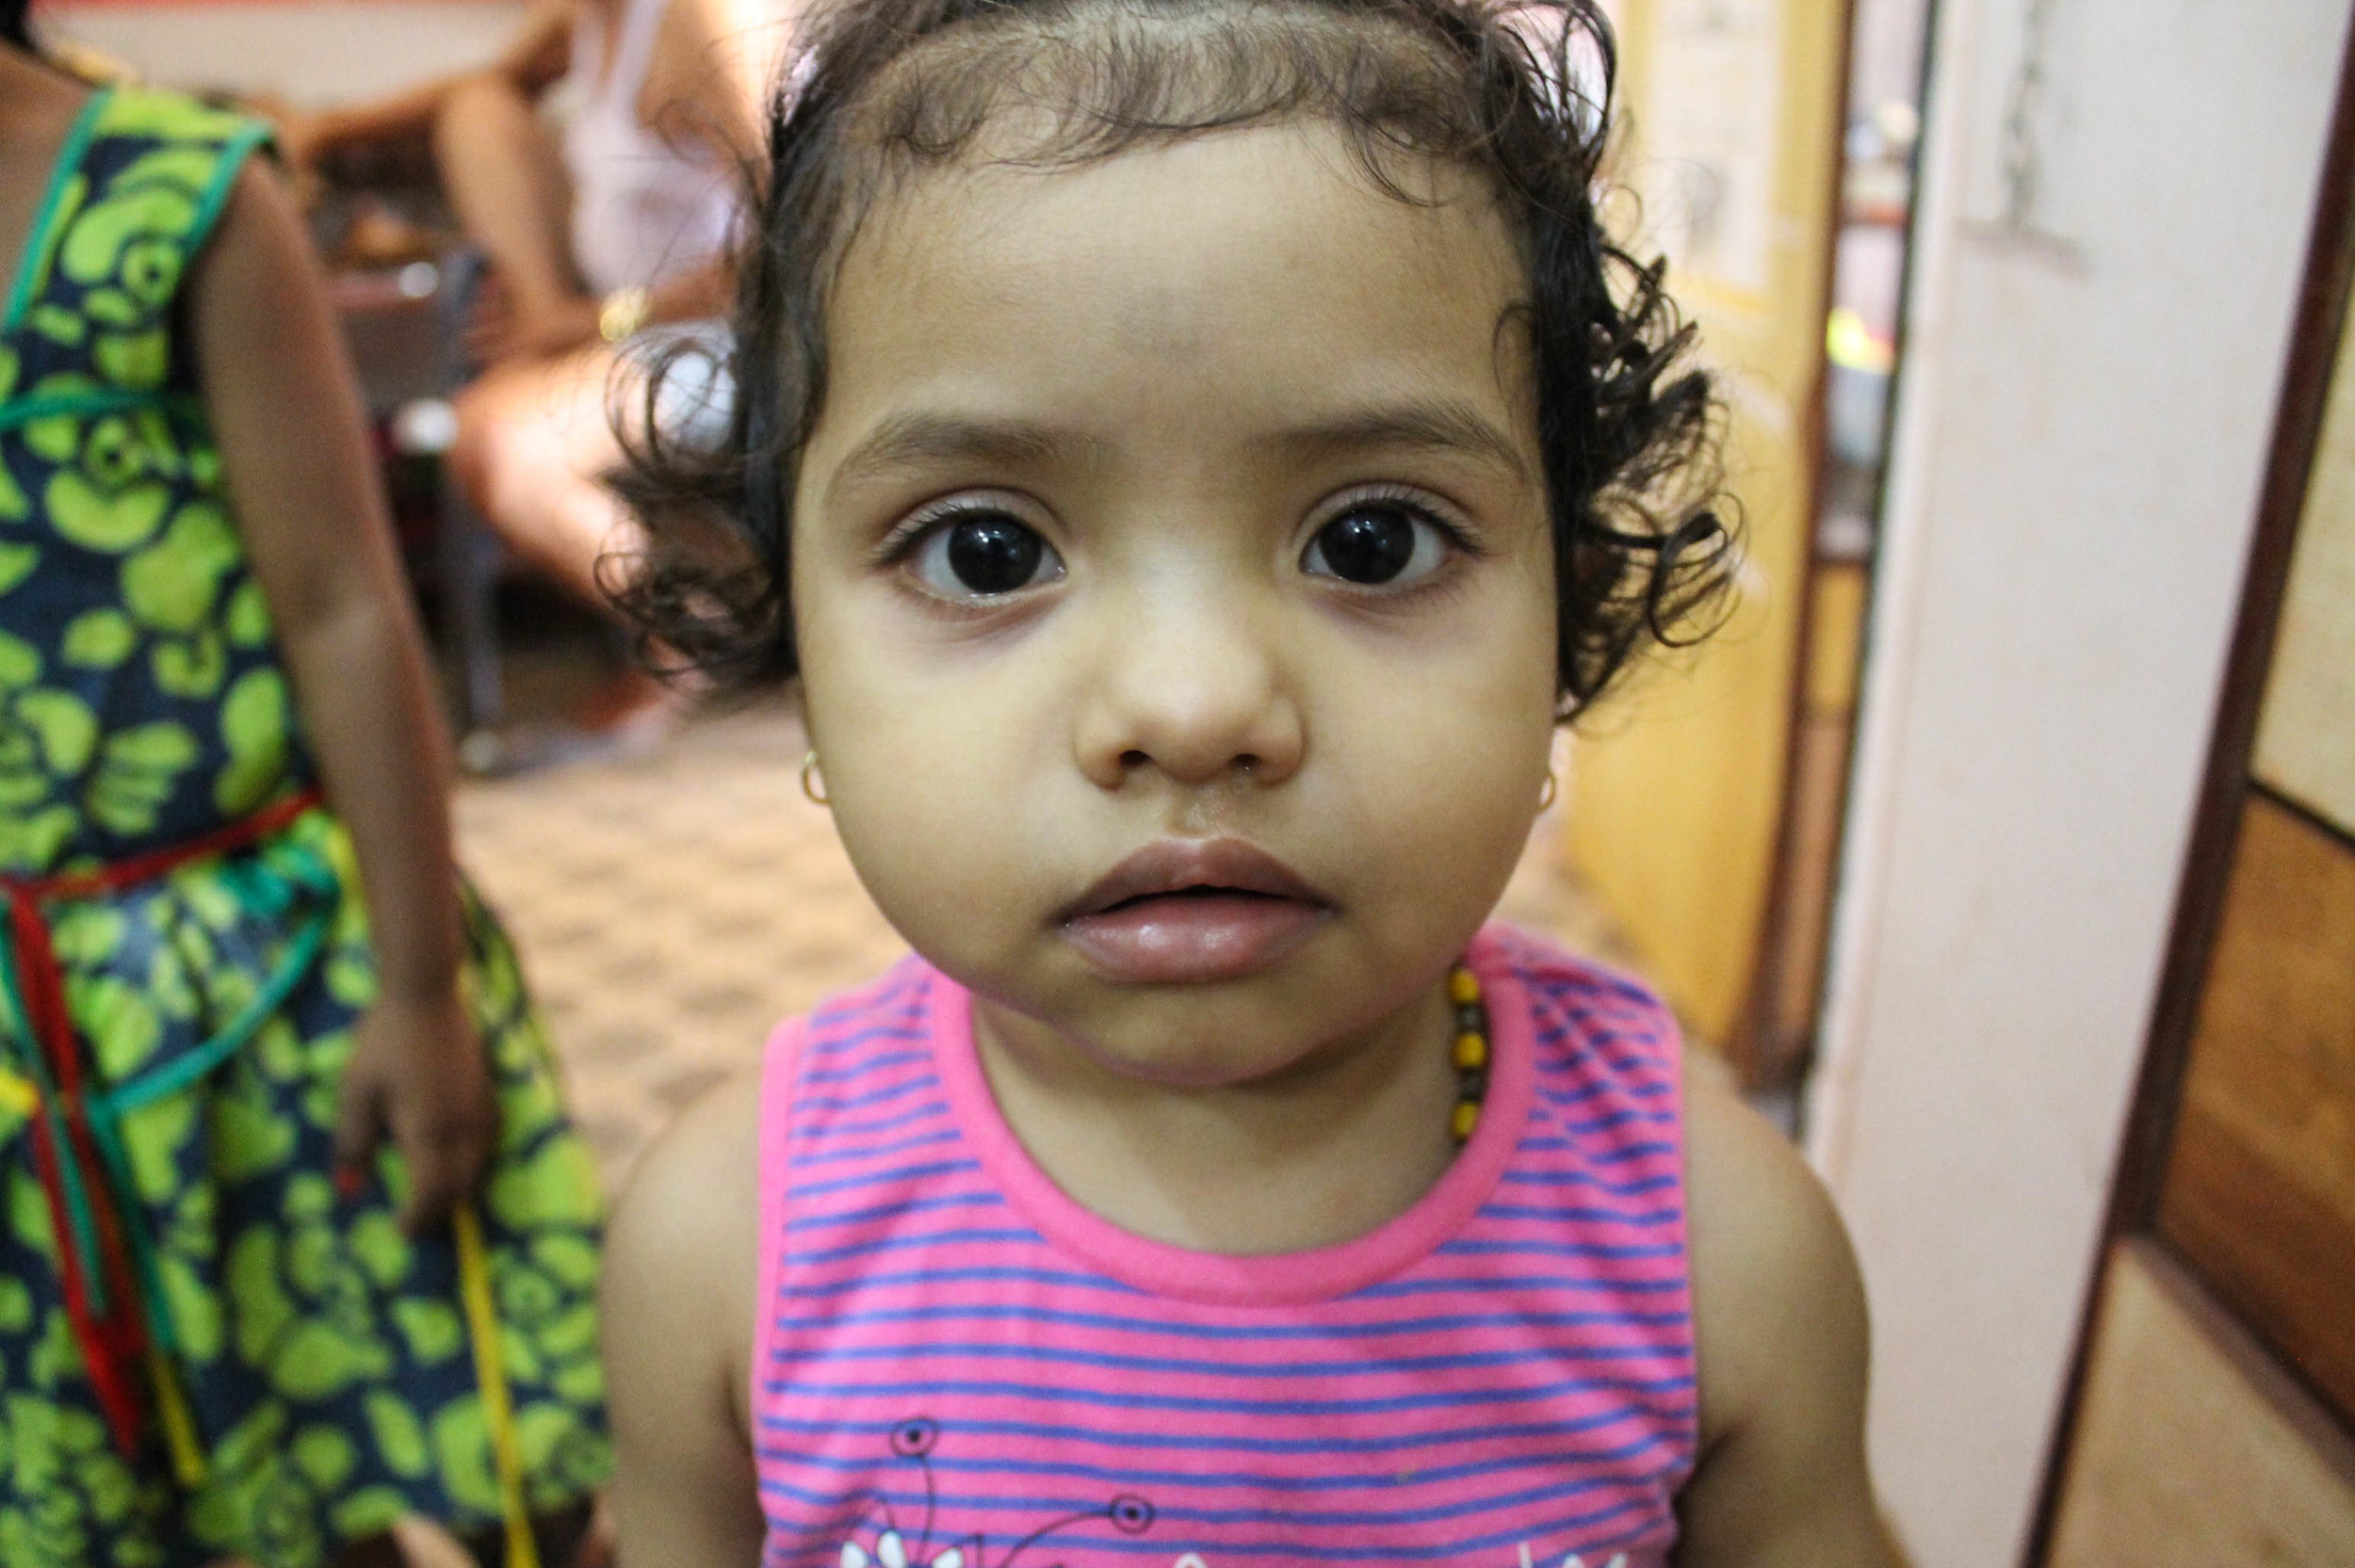 We stopped in to a store to buy sunscreen and met this little gal who was very intrigued by my camera…